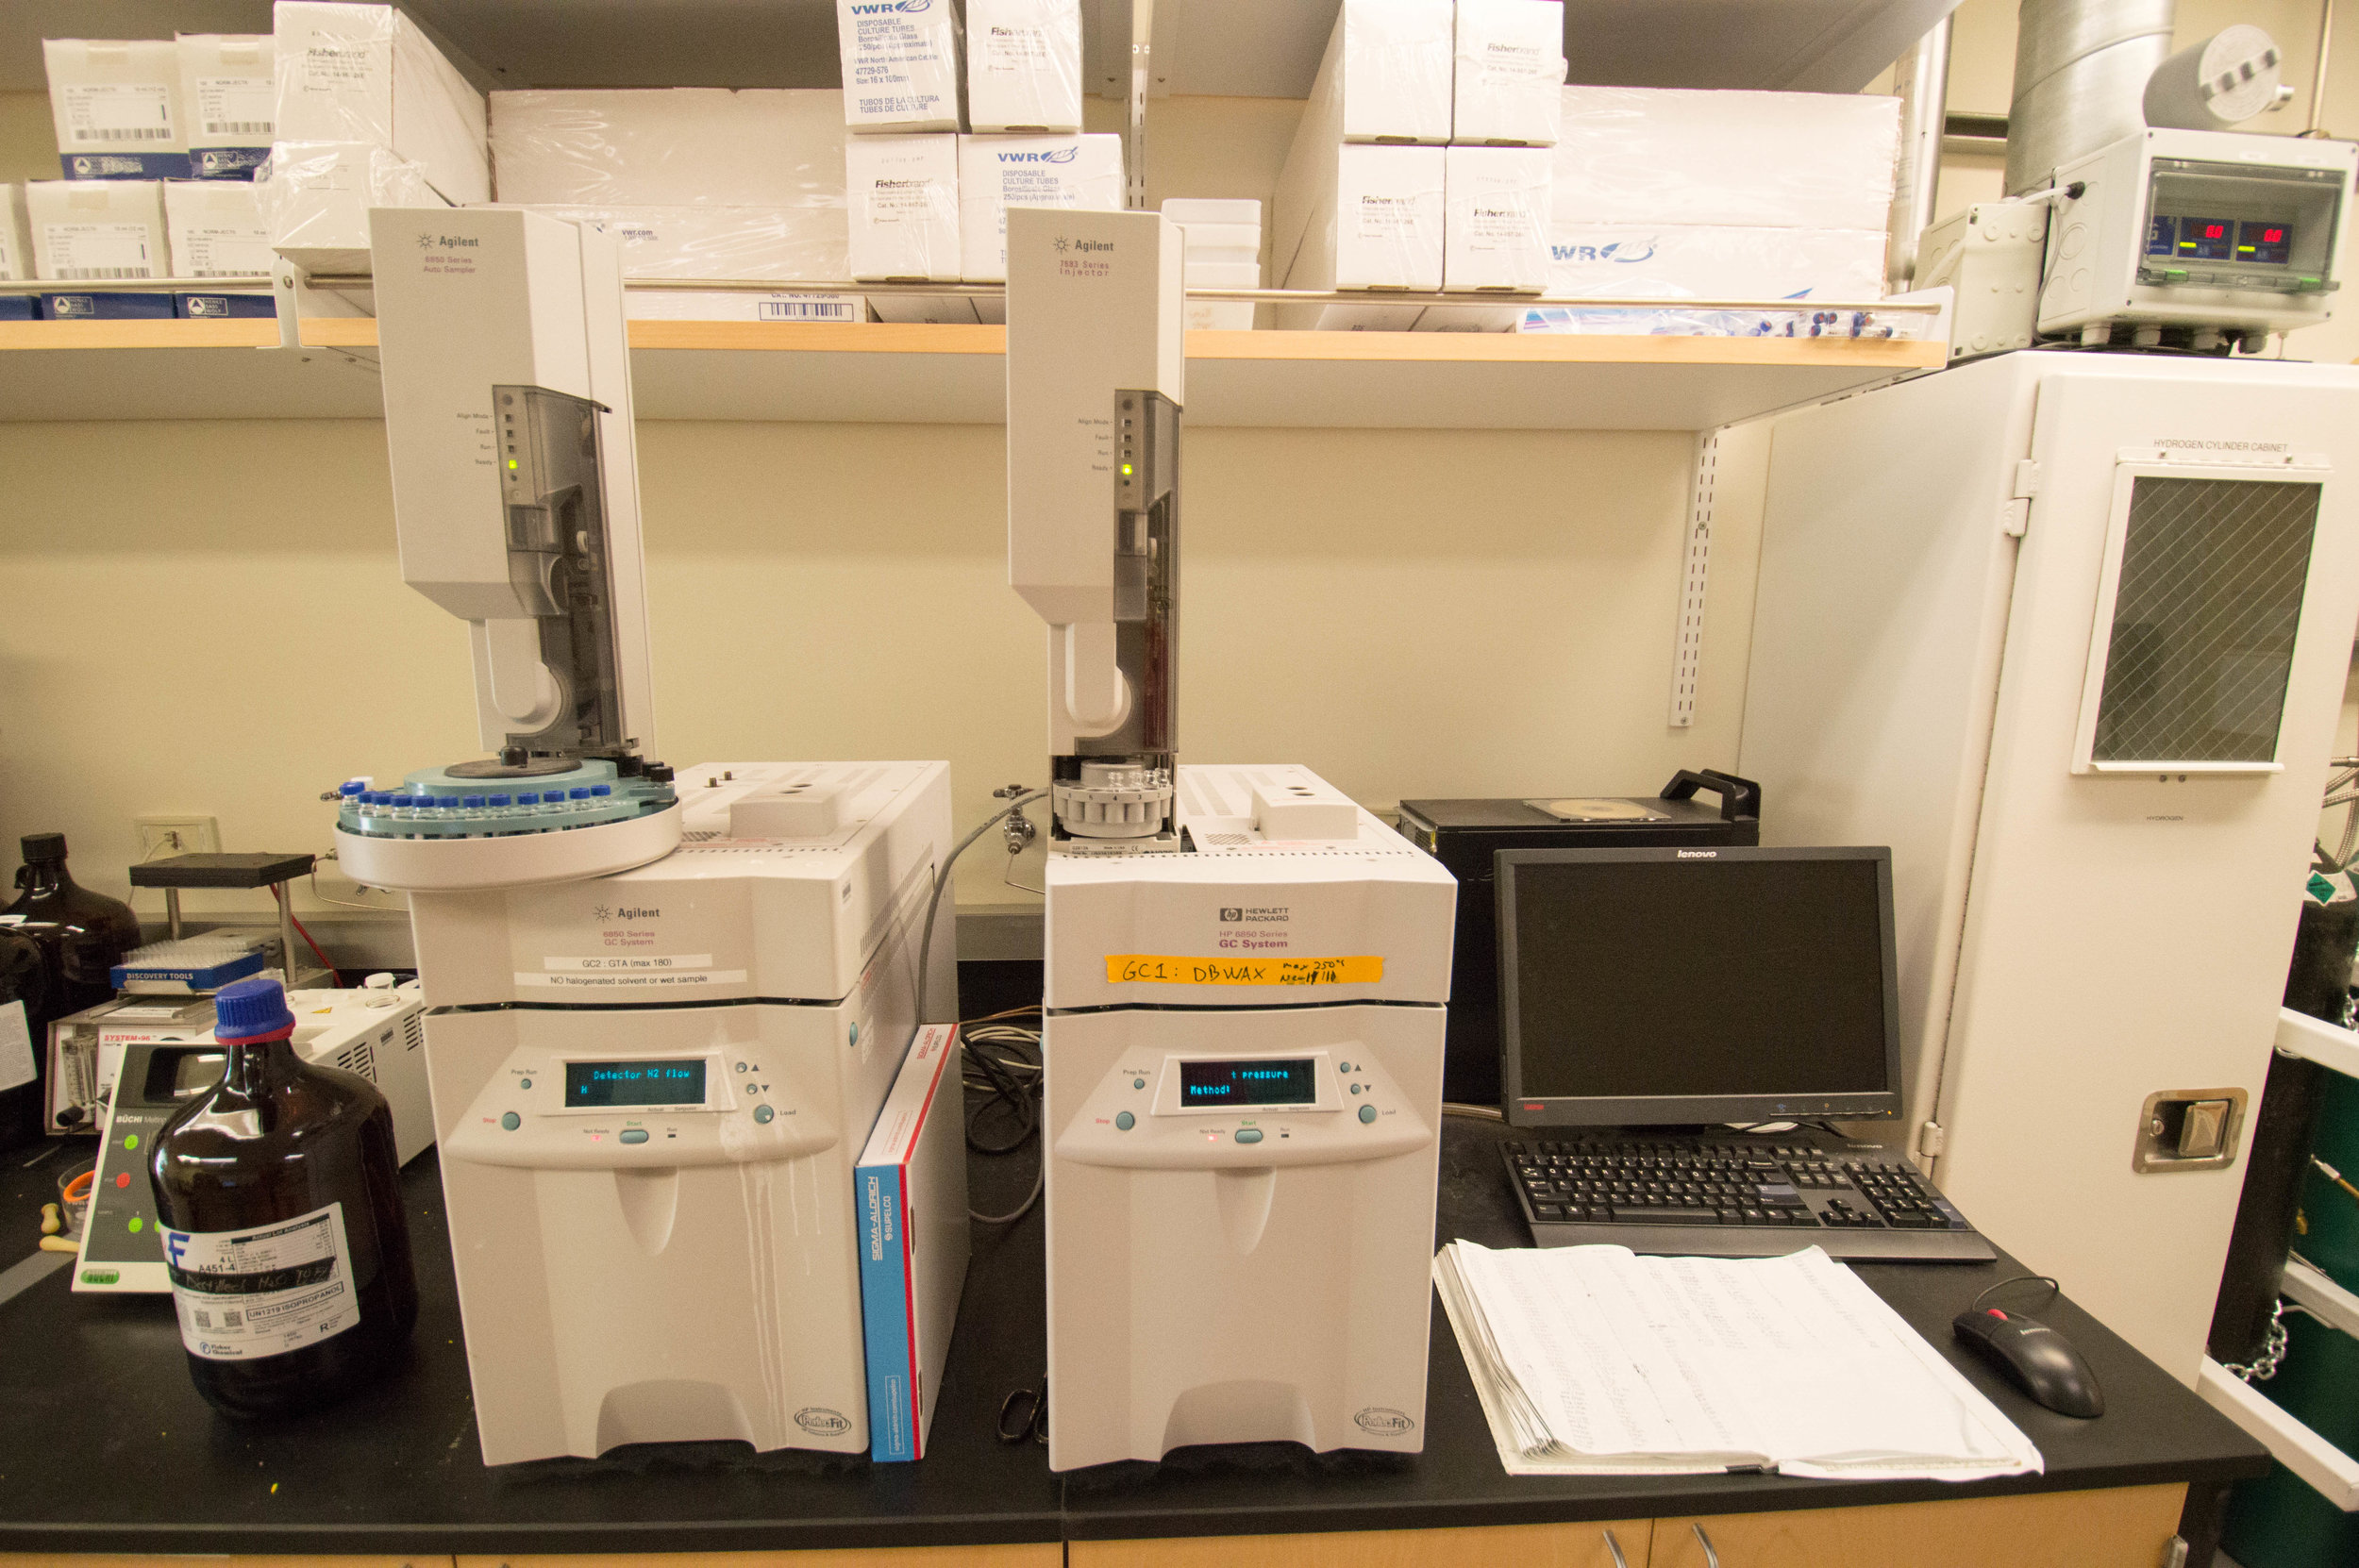 We also have GCs, equipped with autosamplers, which we use for both analytical and chiral separation purposes